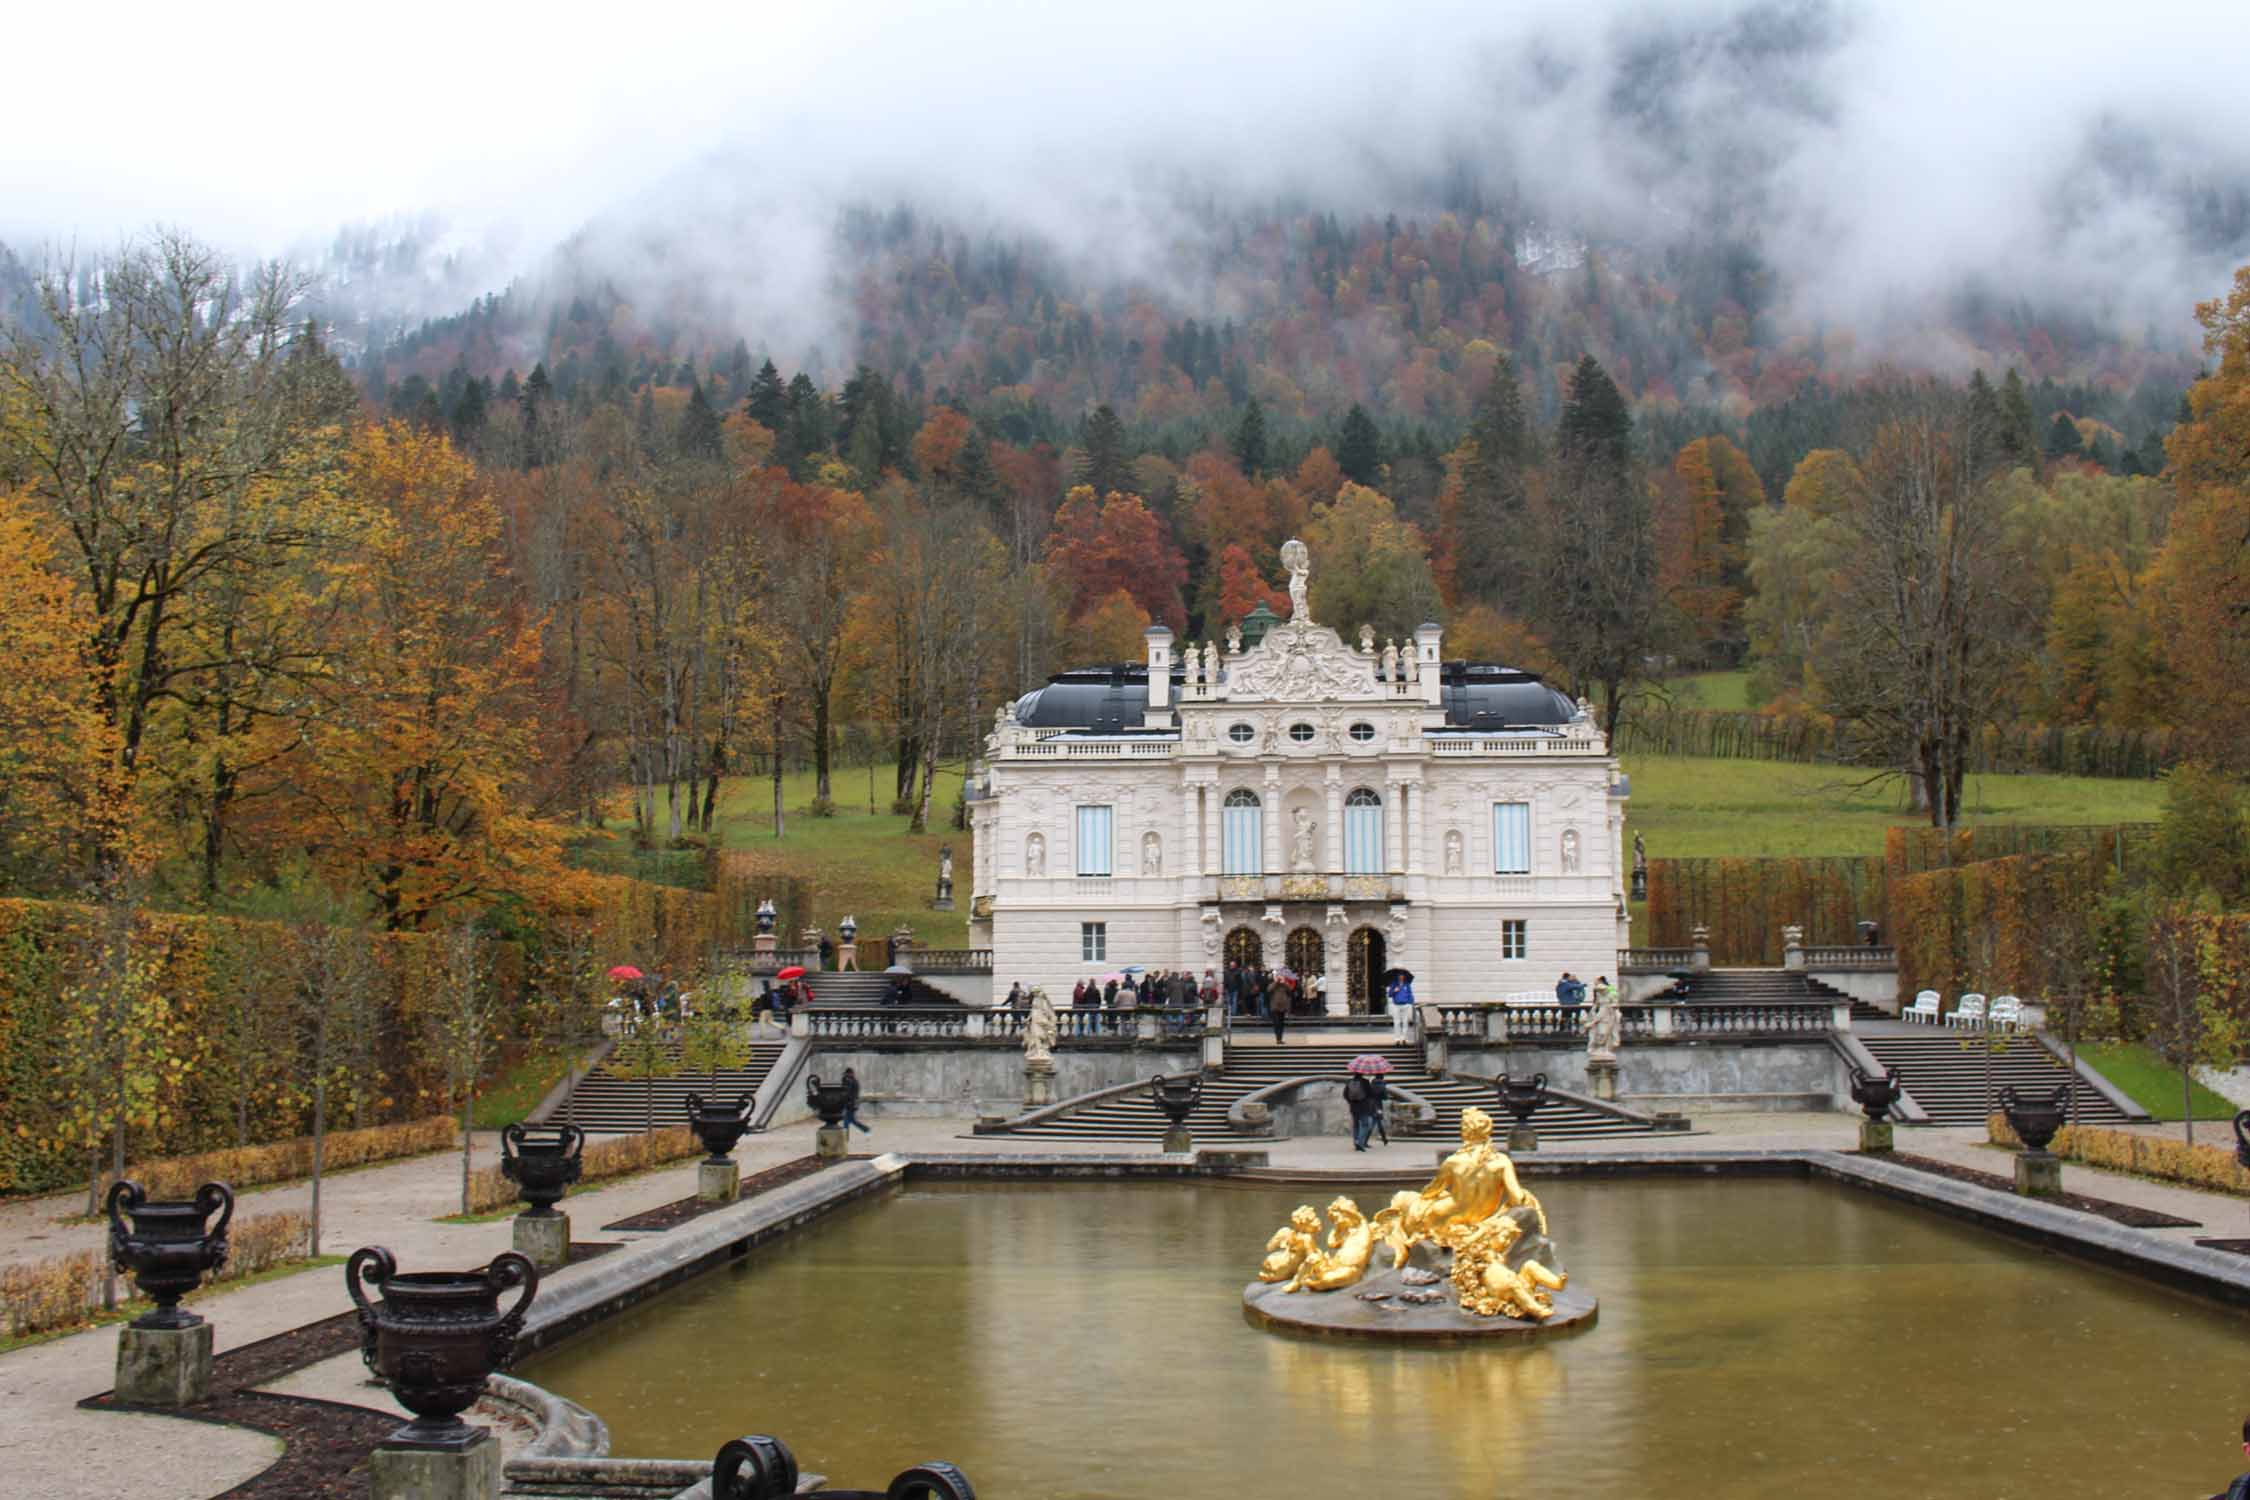 The beautiful Linderhof Palace